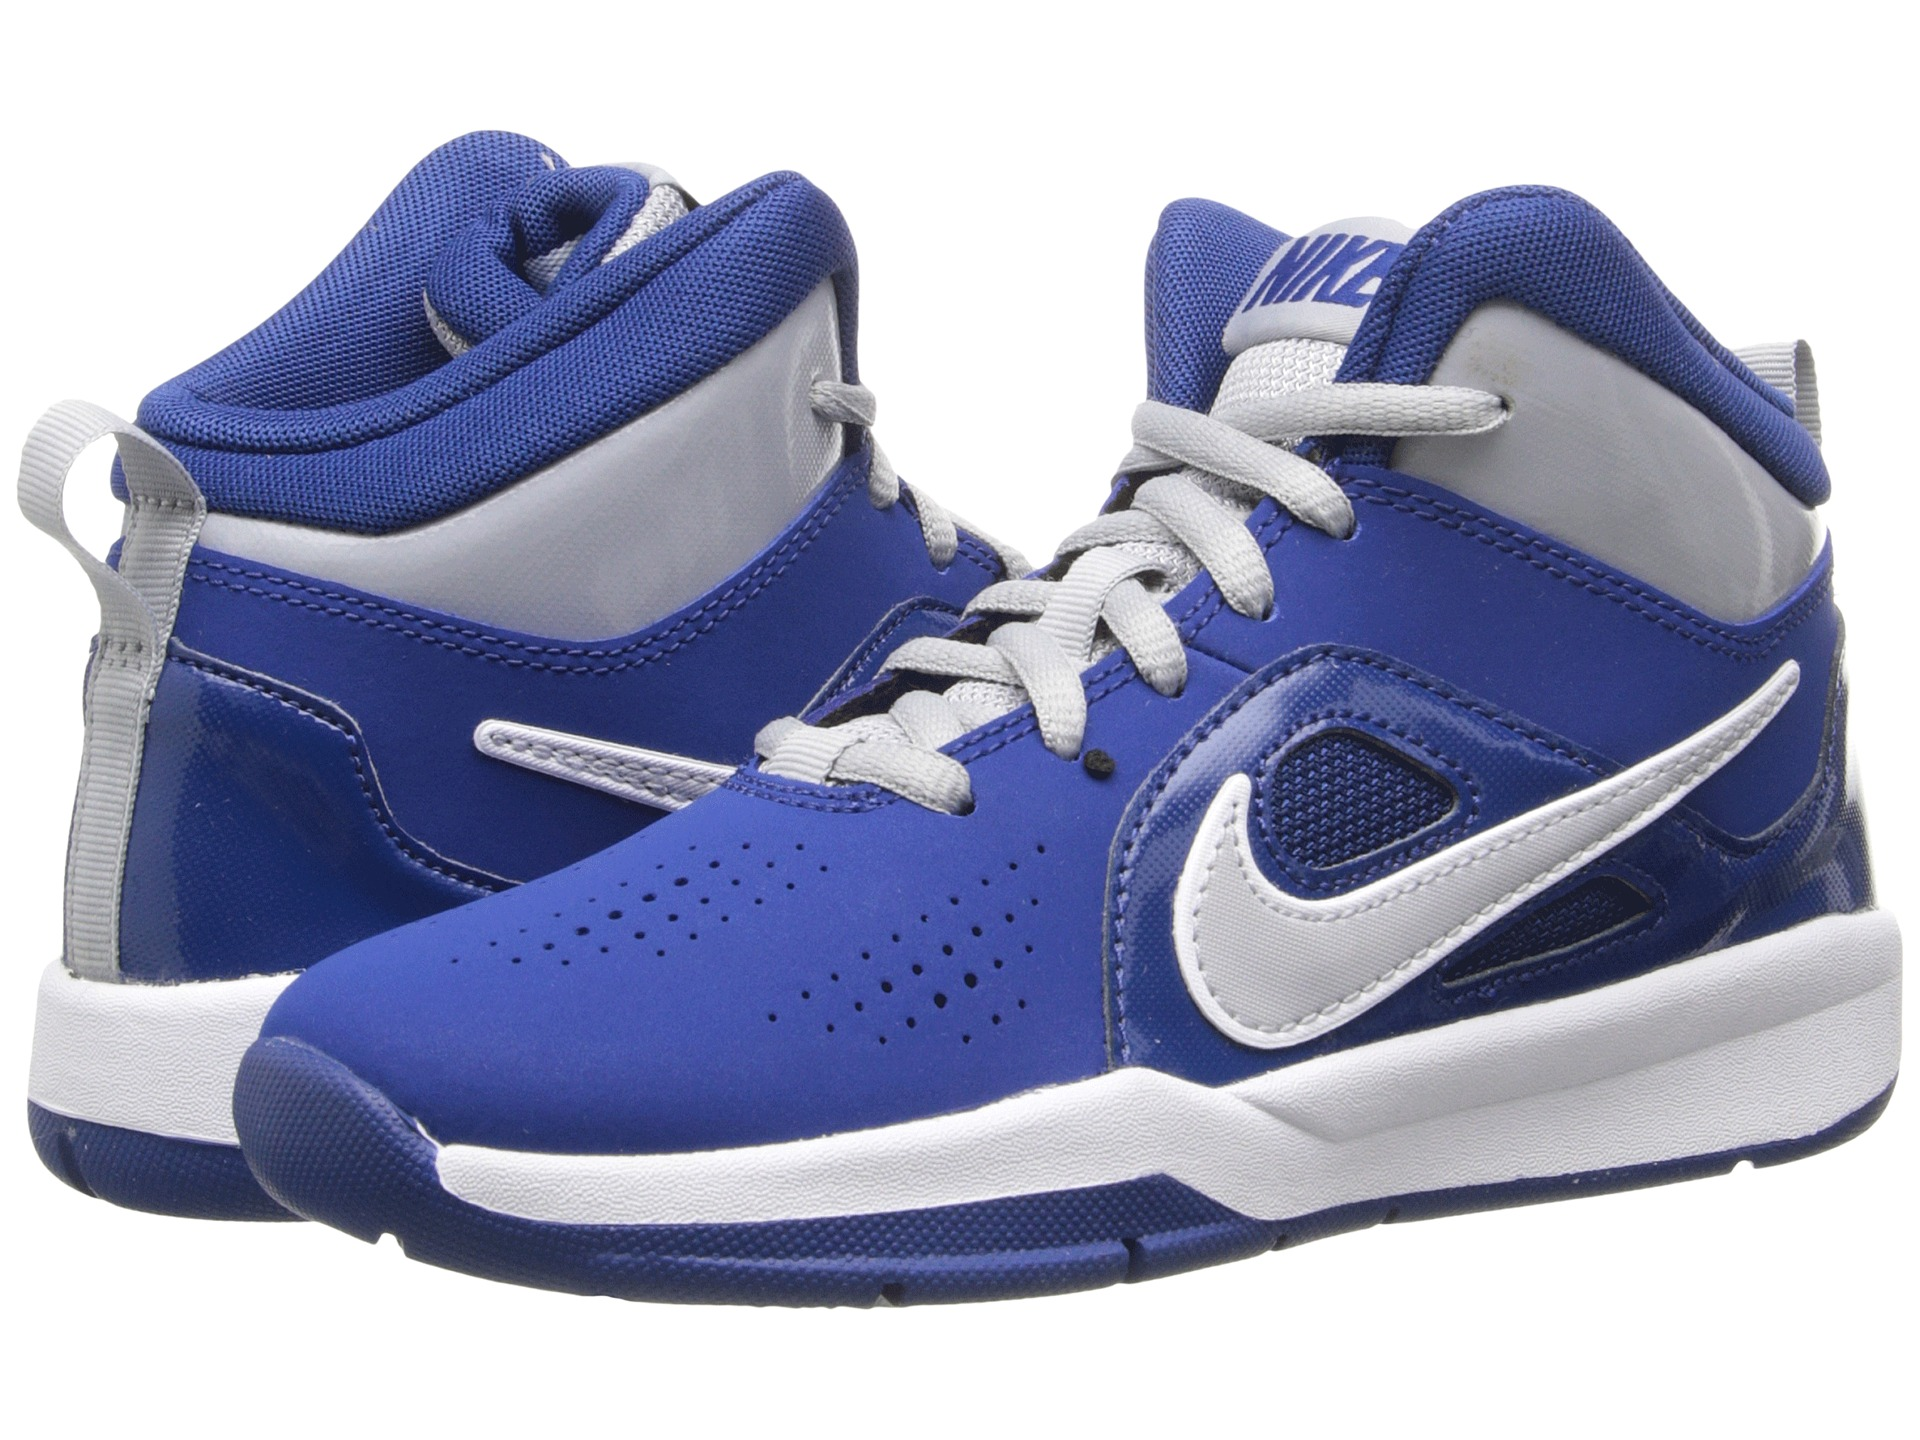 cheap for discount f6c4e a747c ... promo code for nike kaishi run zappos . fdceb 57f8a